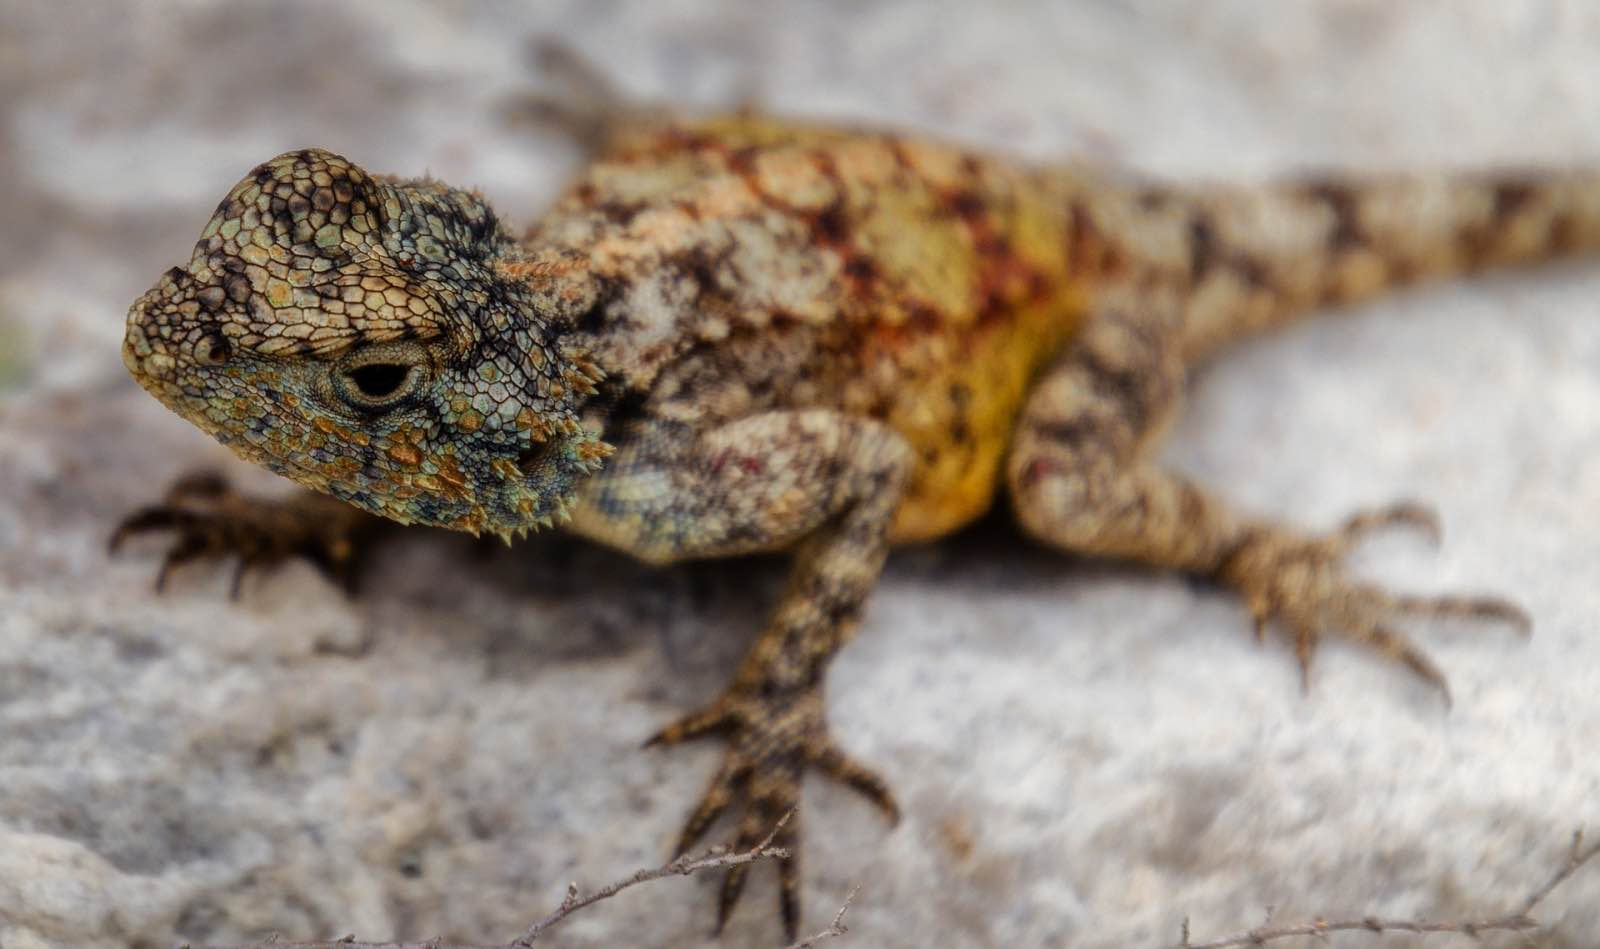 An agama poised on a rock - details of the Cape's diverse nature